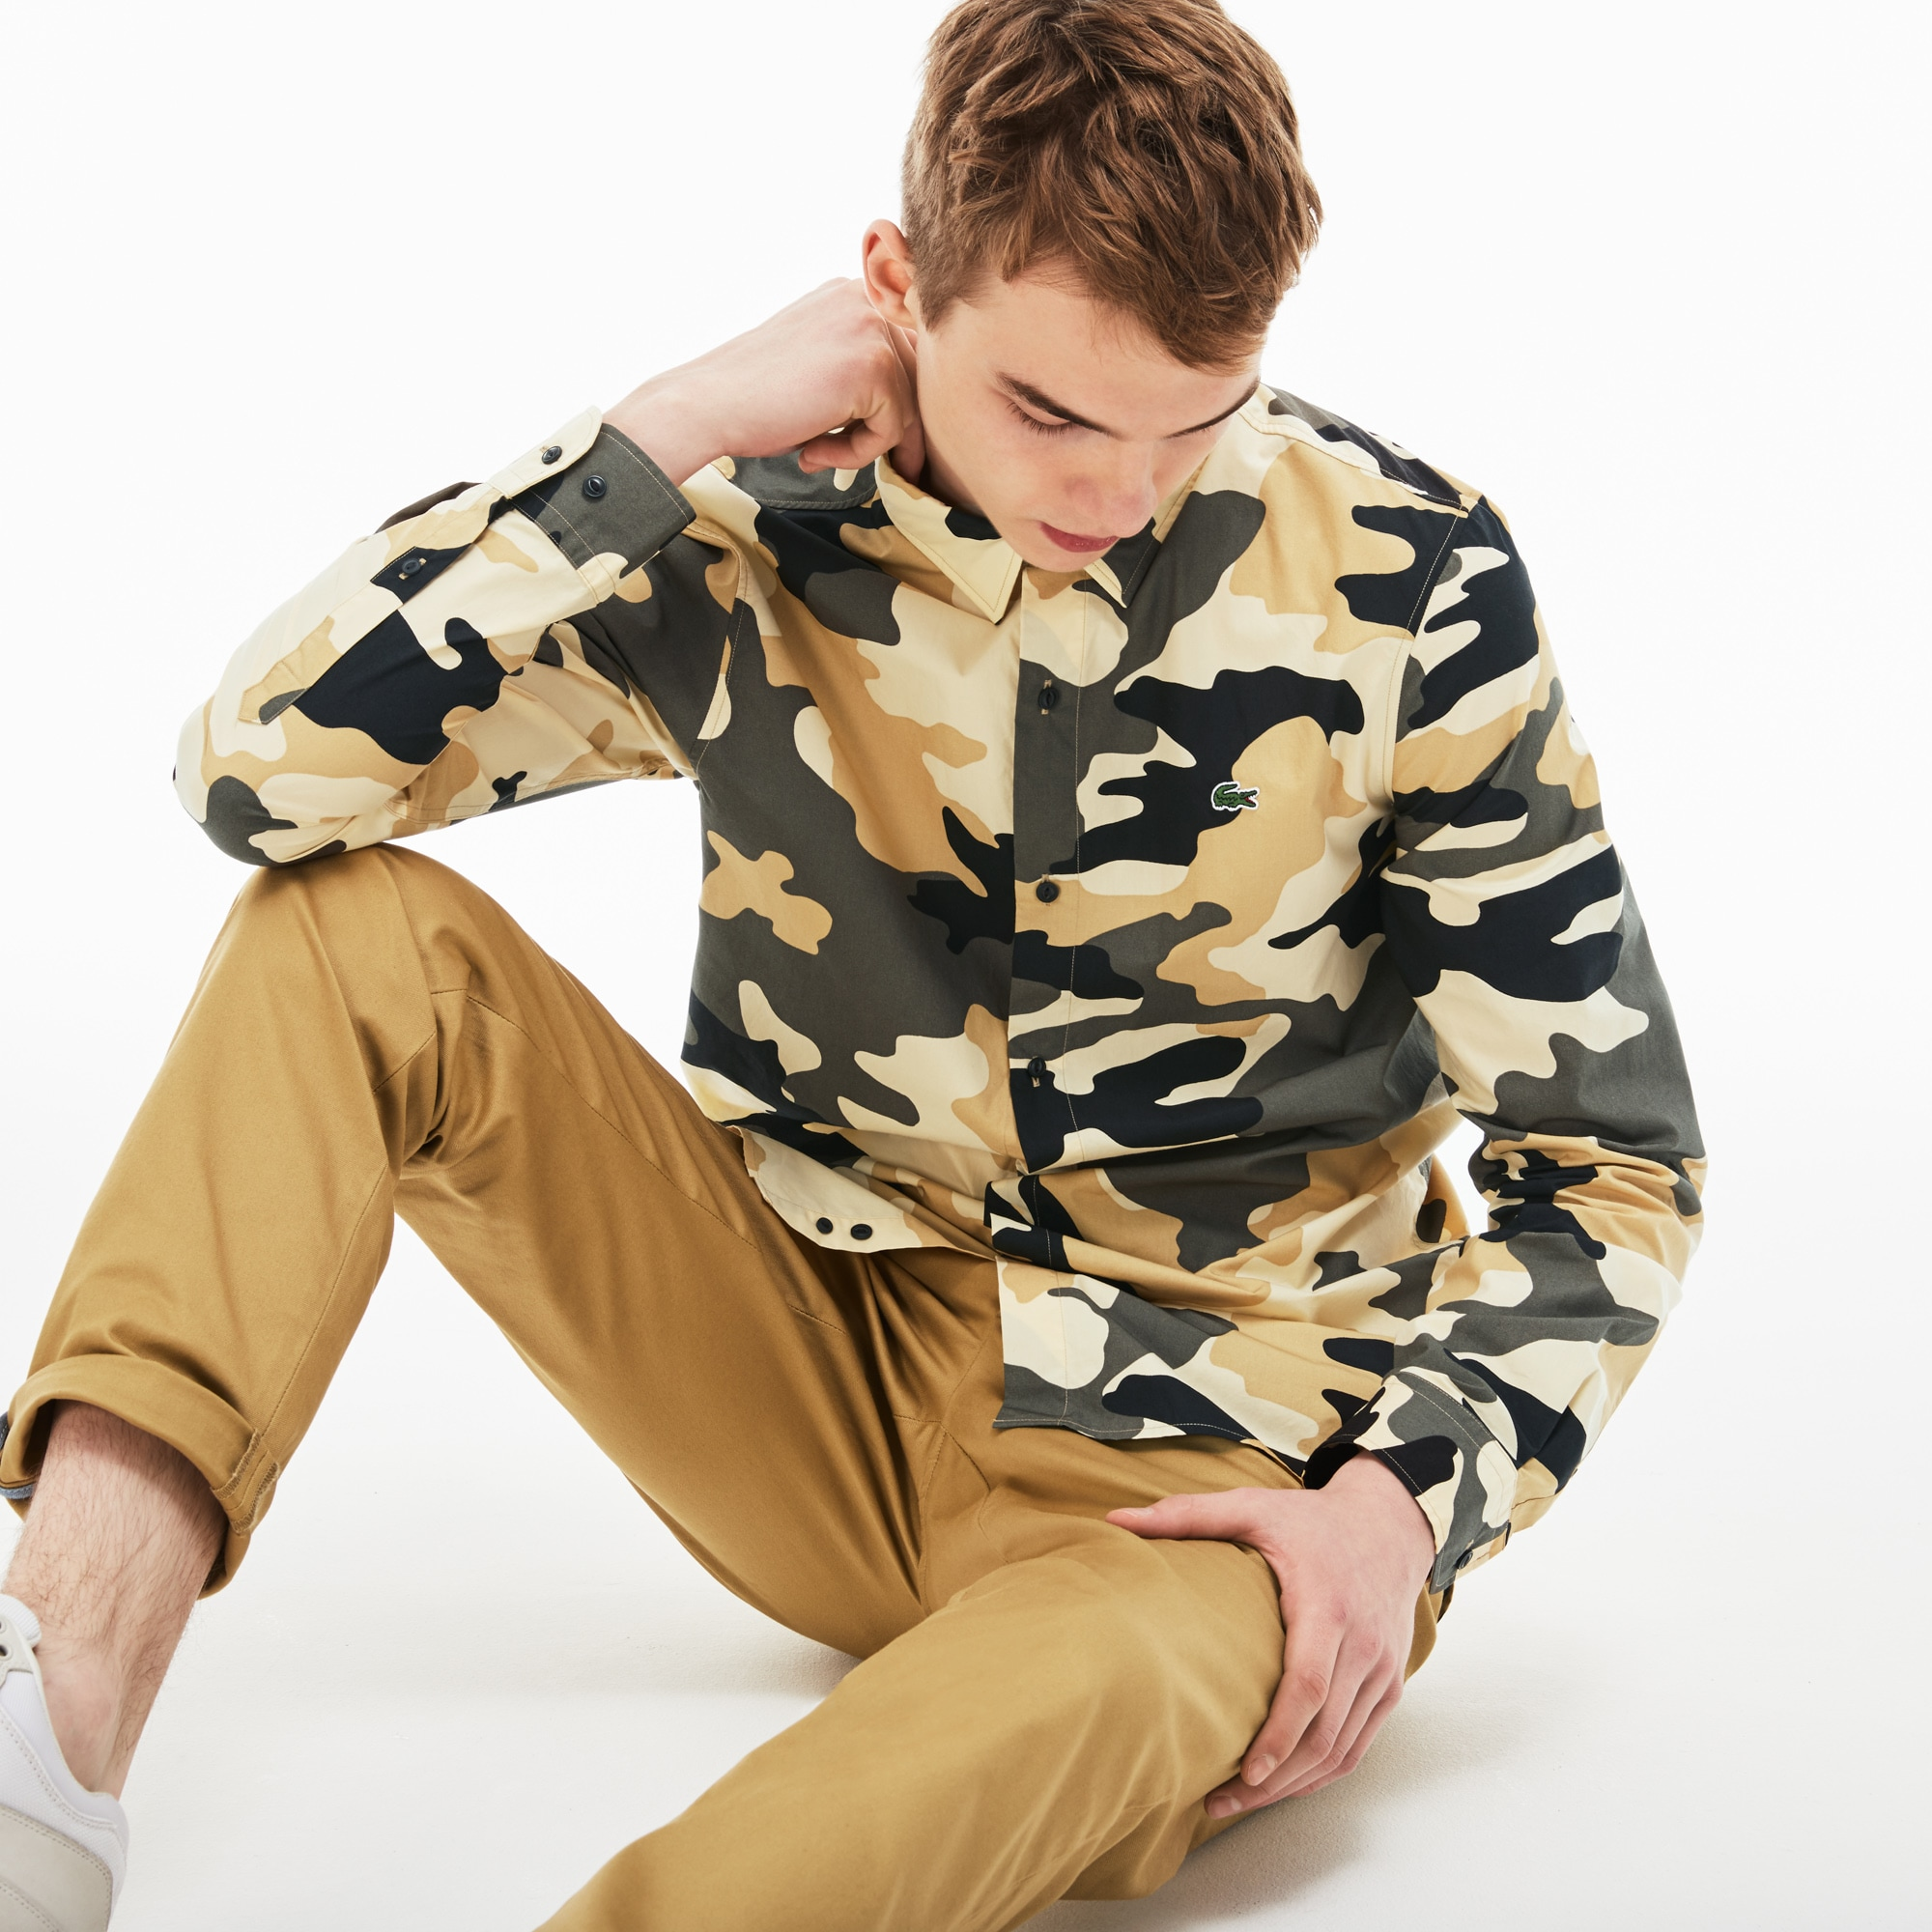 Men's Lacoste LIVE Skinny Fit Camouflage Print Poplin Shirt